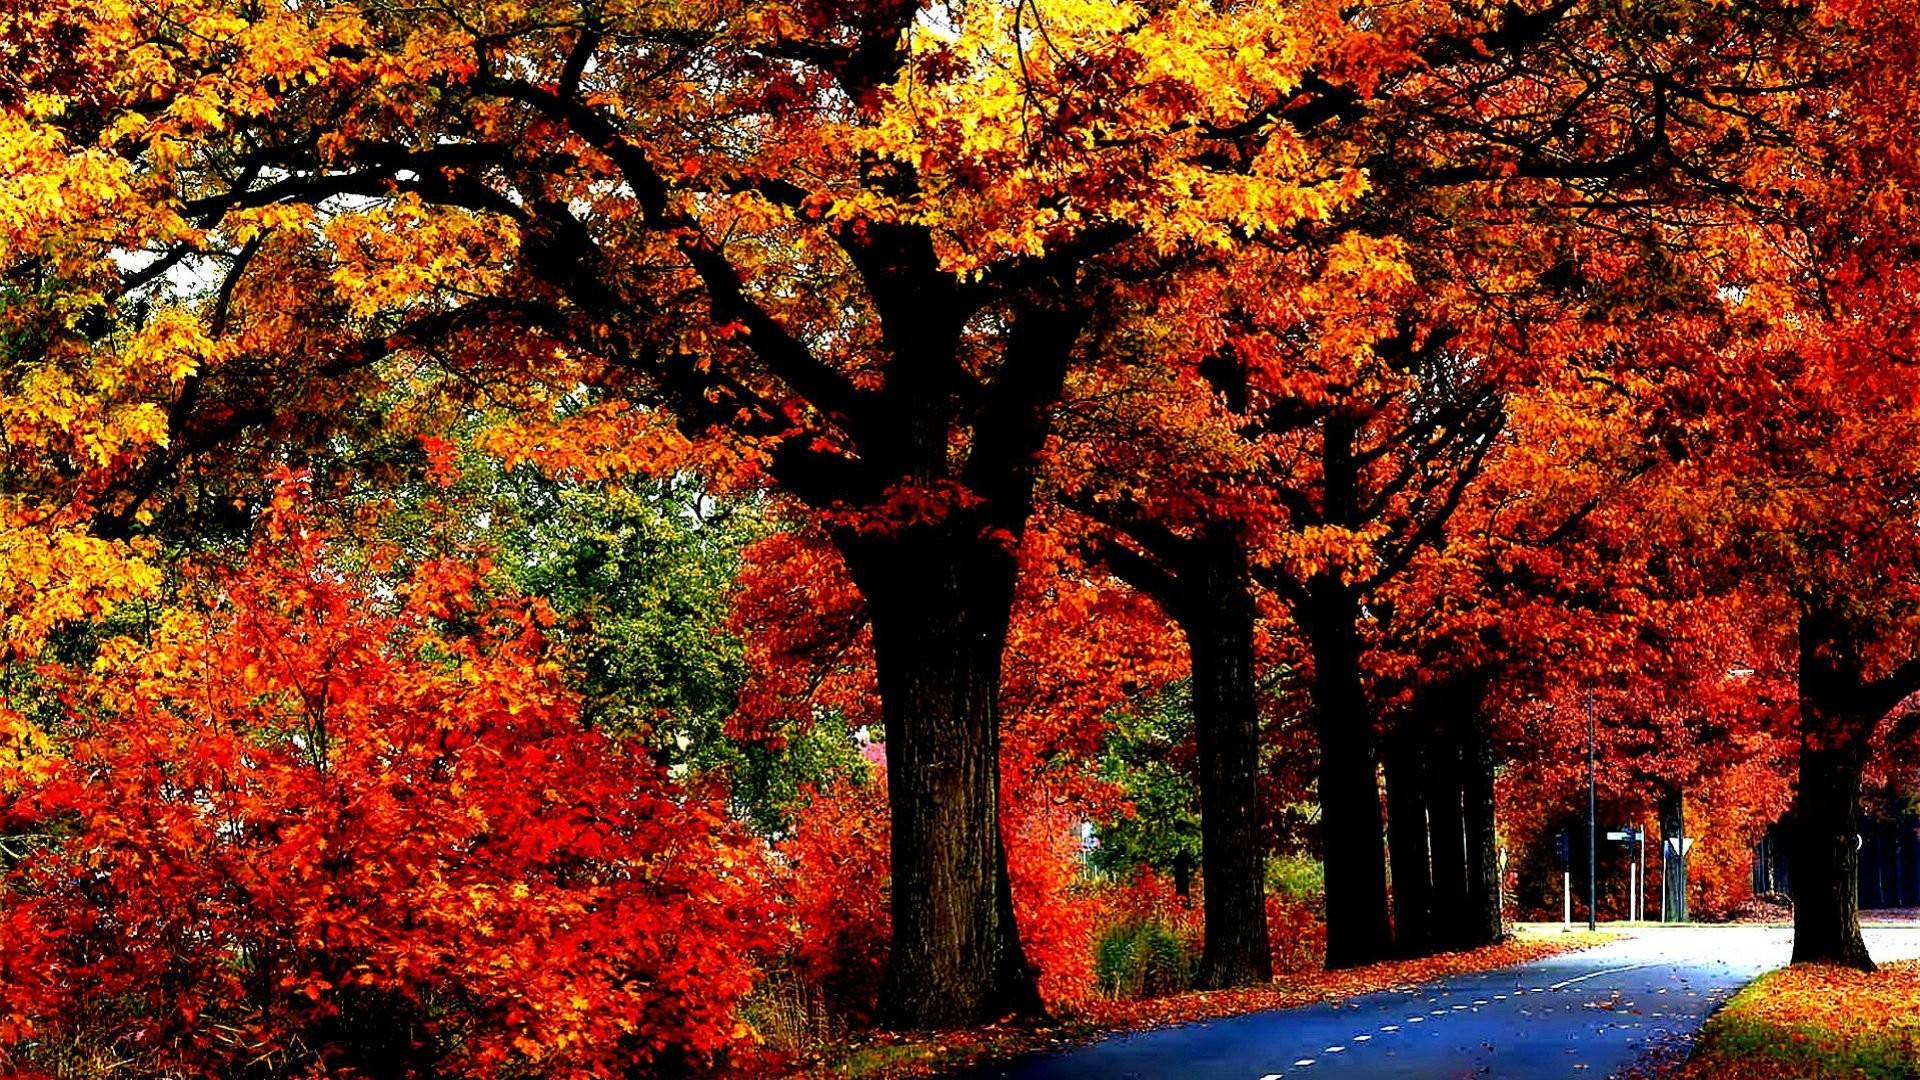 1920x1080, Tree Leaves Autumn Fall Nature Landscape - Fall Hd Wallpapers 1080p - HD Wallpaper